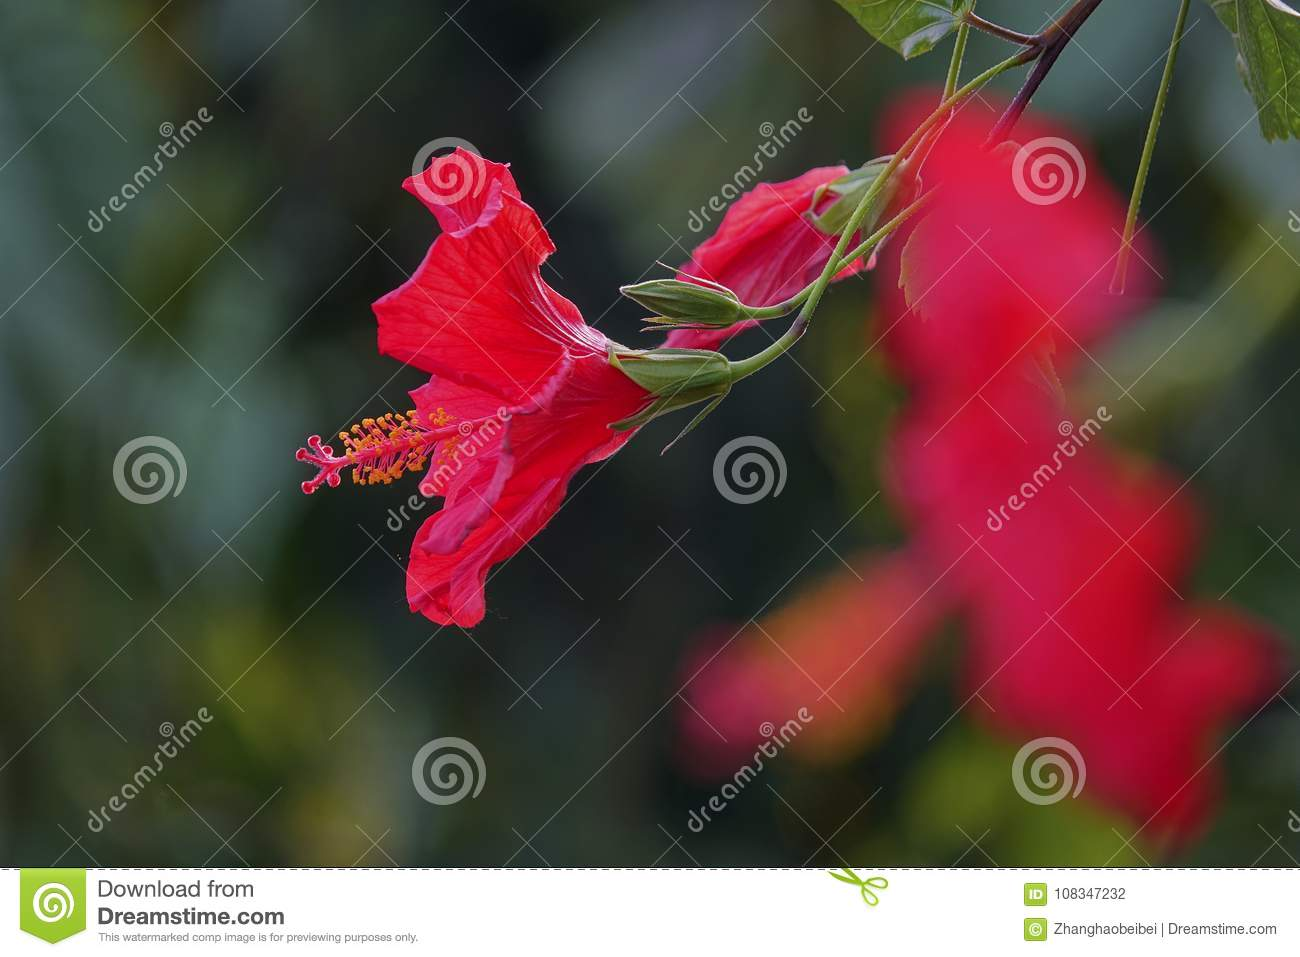 Chinese hibiscus stock photo image of blooming flower 108347232 royalty free stock photo izmirmasajfo Image collections